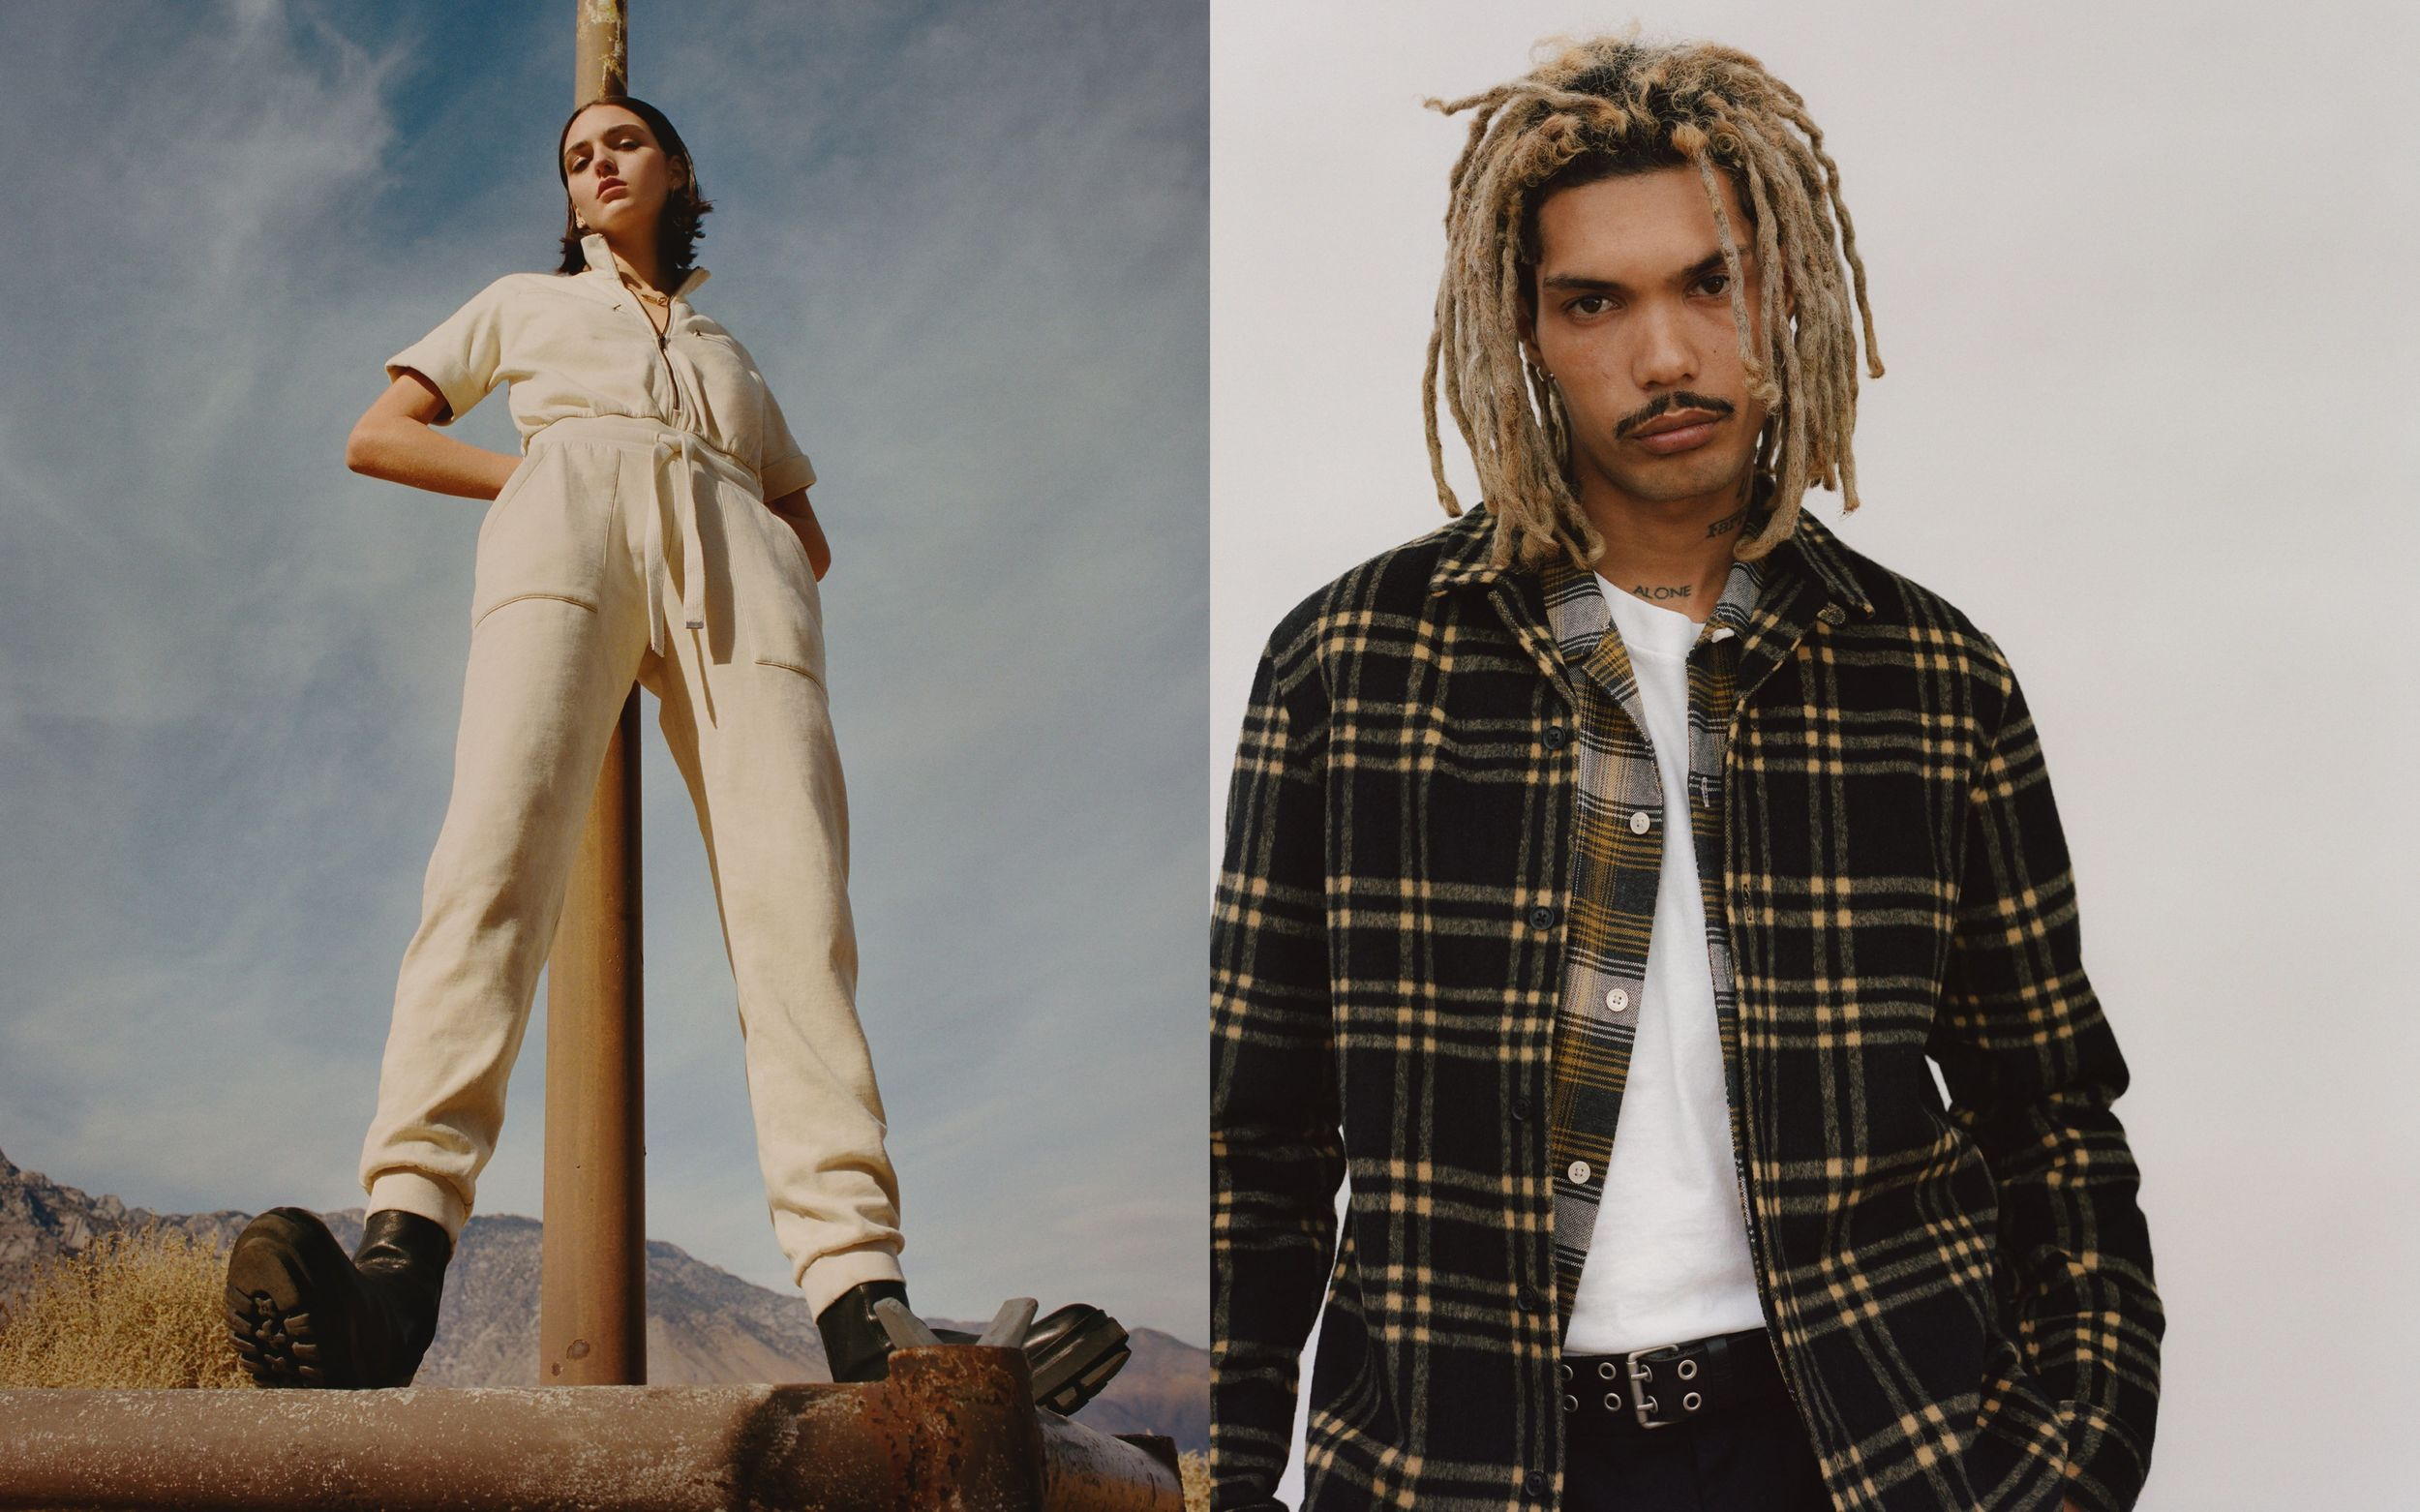 Two portraits of a man and a woman wearing items from our latest collection.